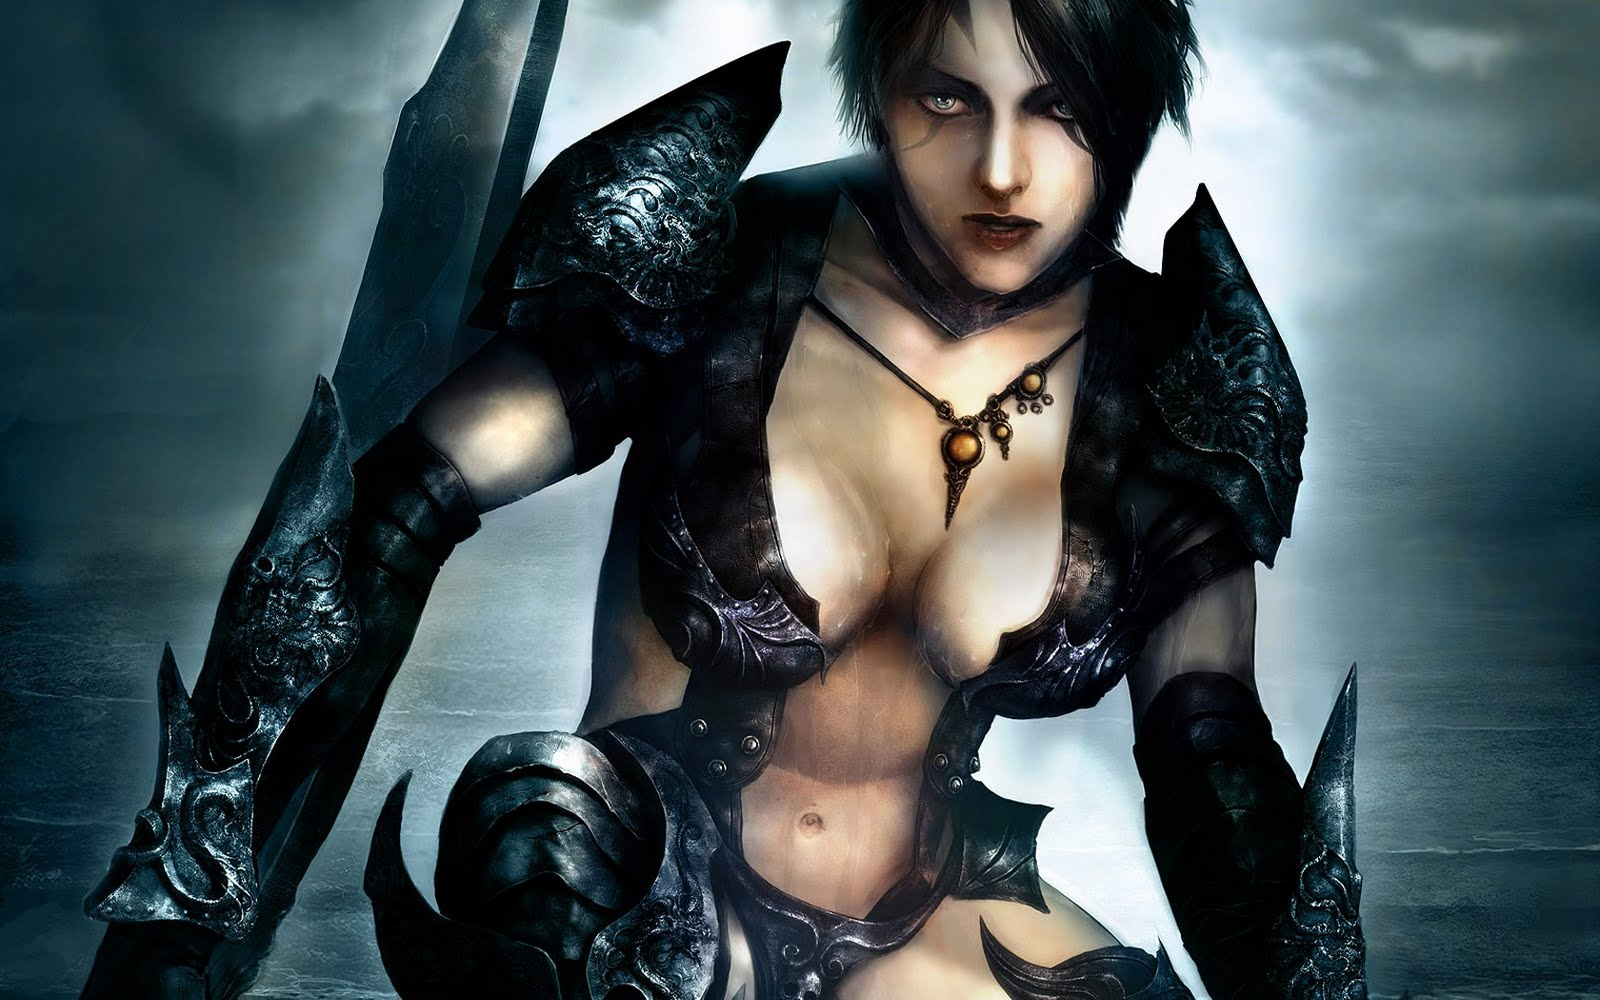 Prince of persia games naked photos hentai picture